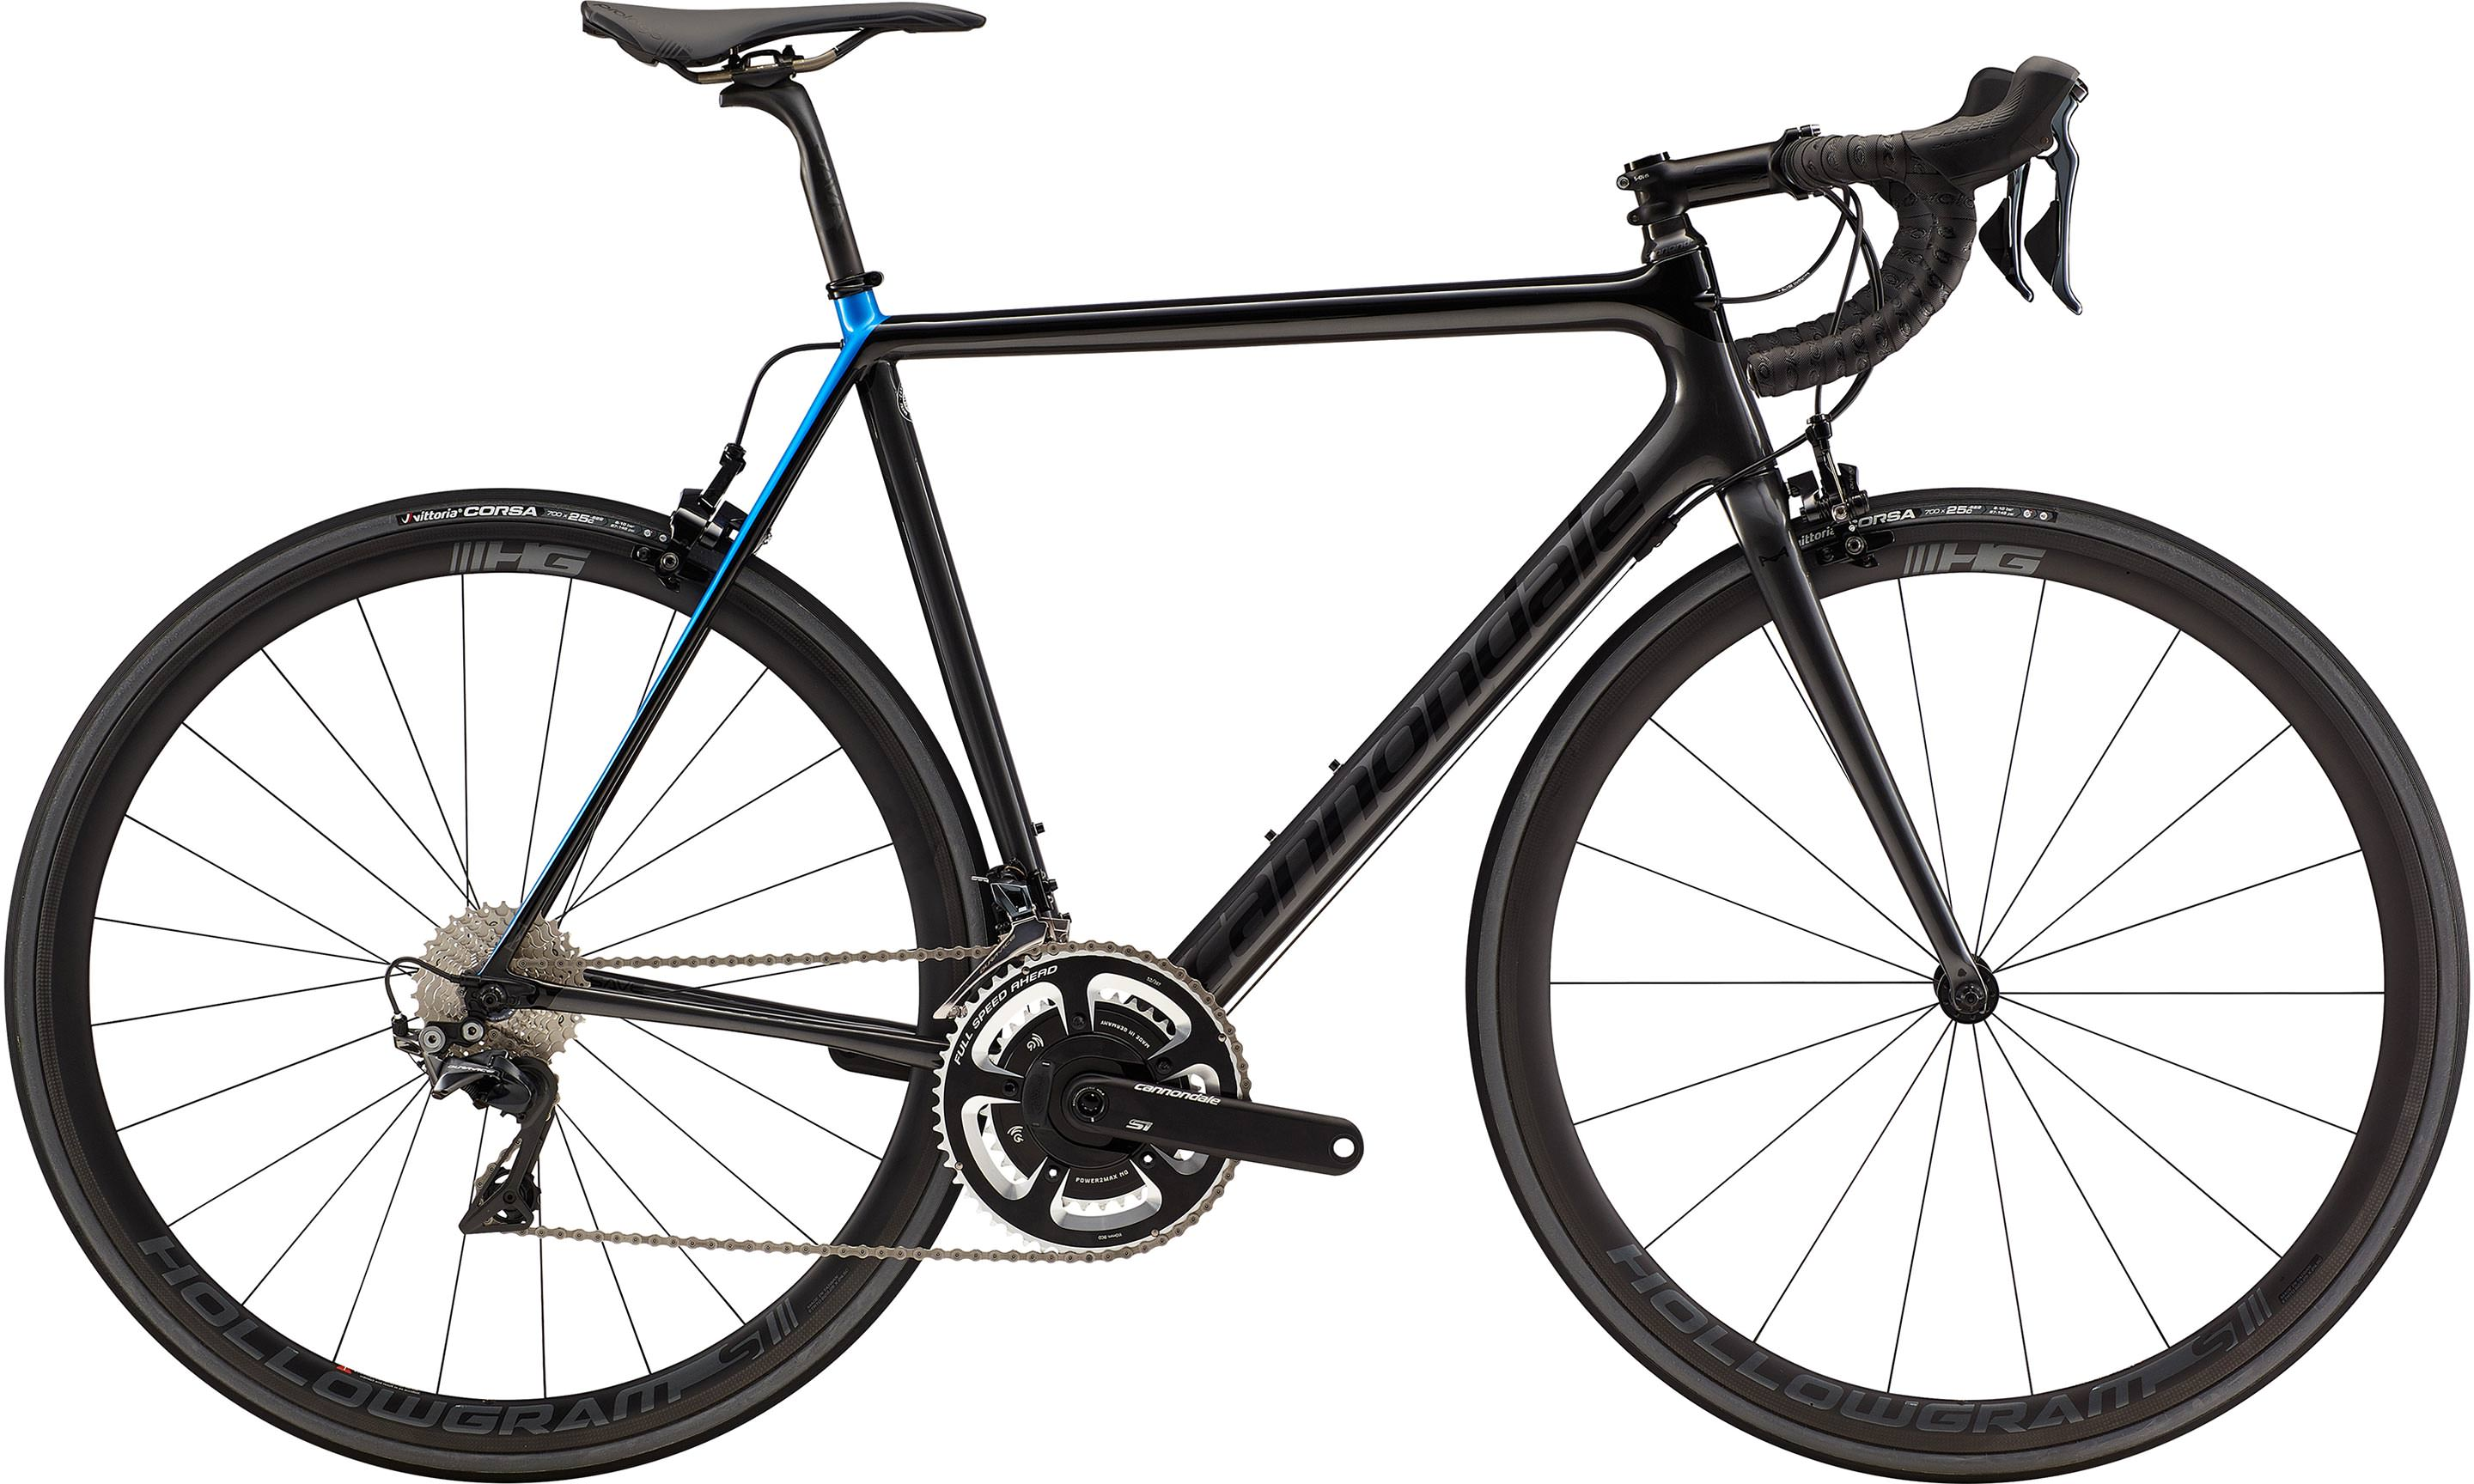 Super Six EVO Hi-Mod Dura-ace | Culture Vélo